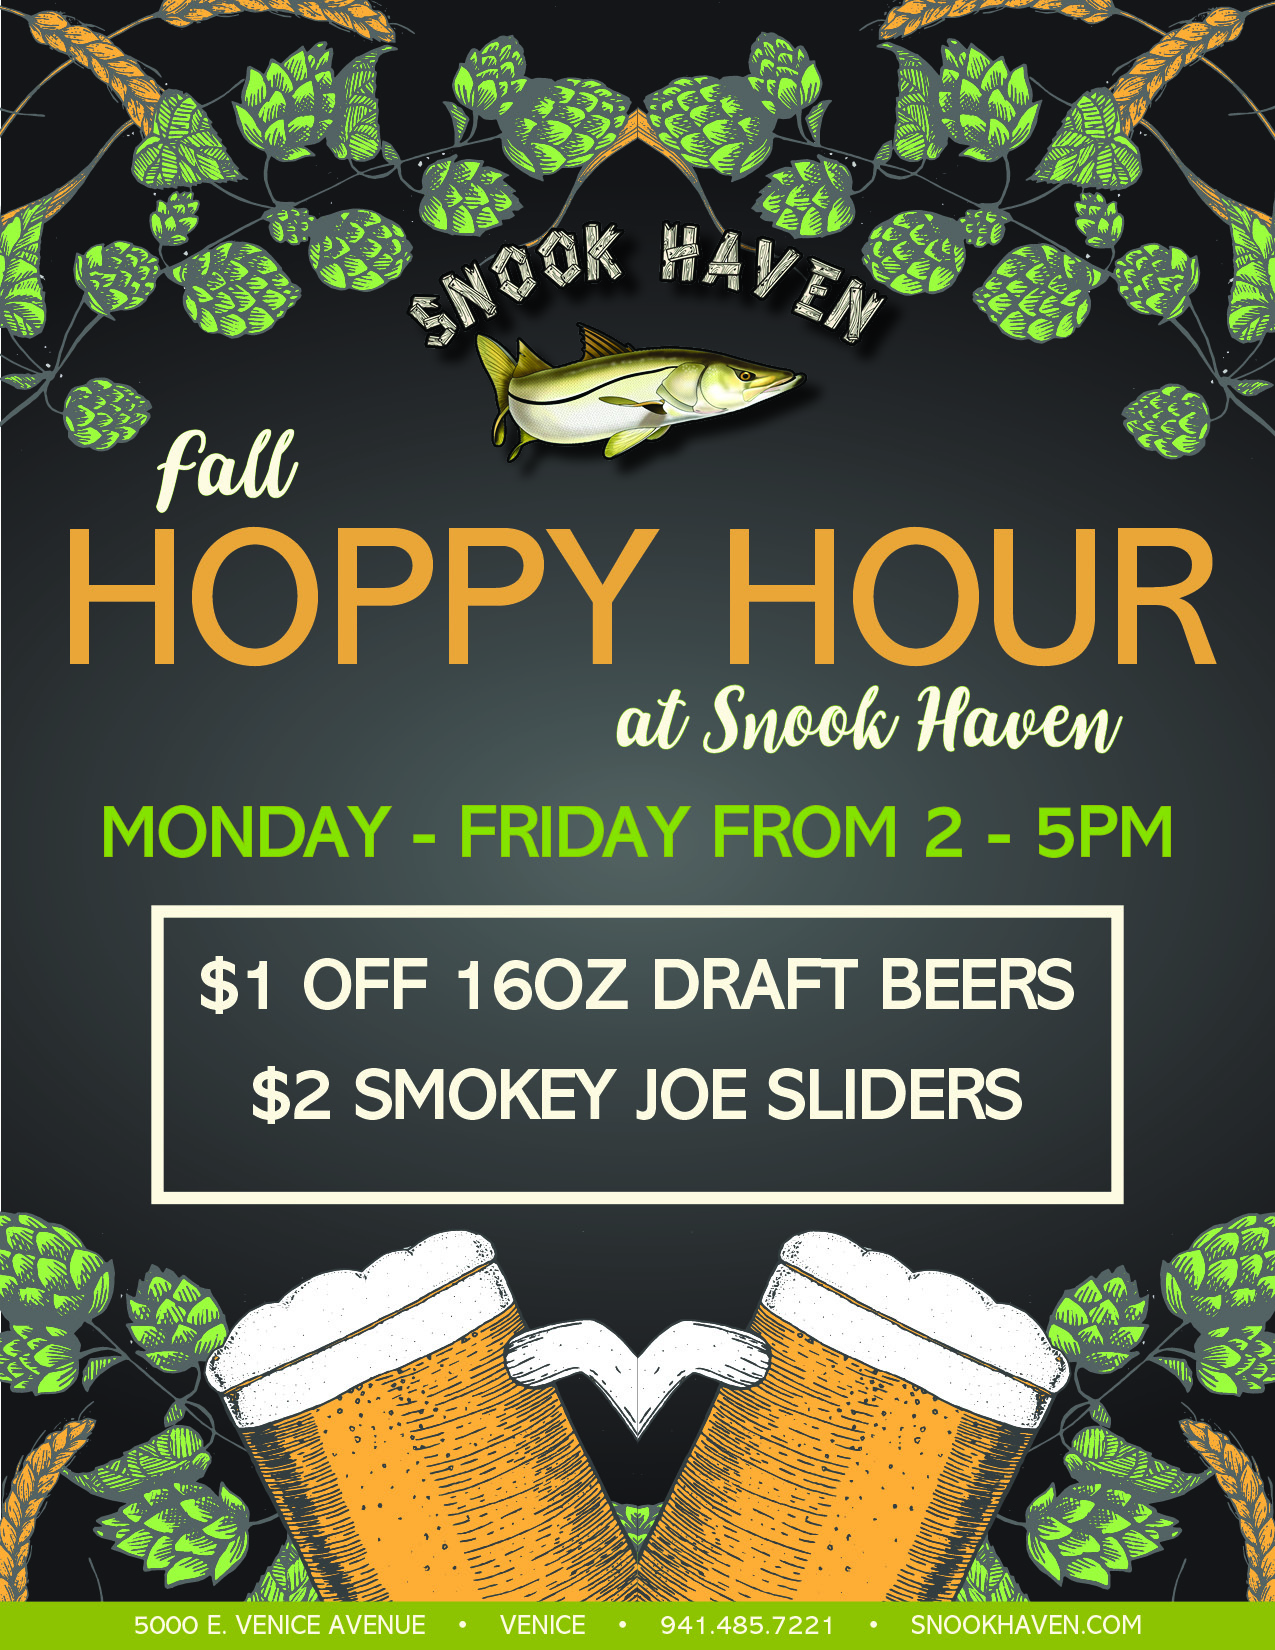 Fall & Winter Hoppy Hour at Snook Haven